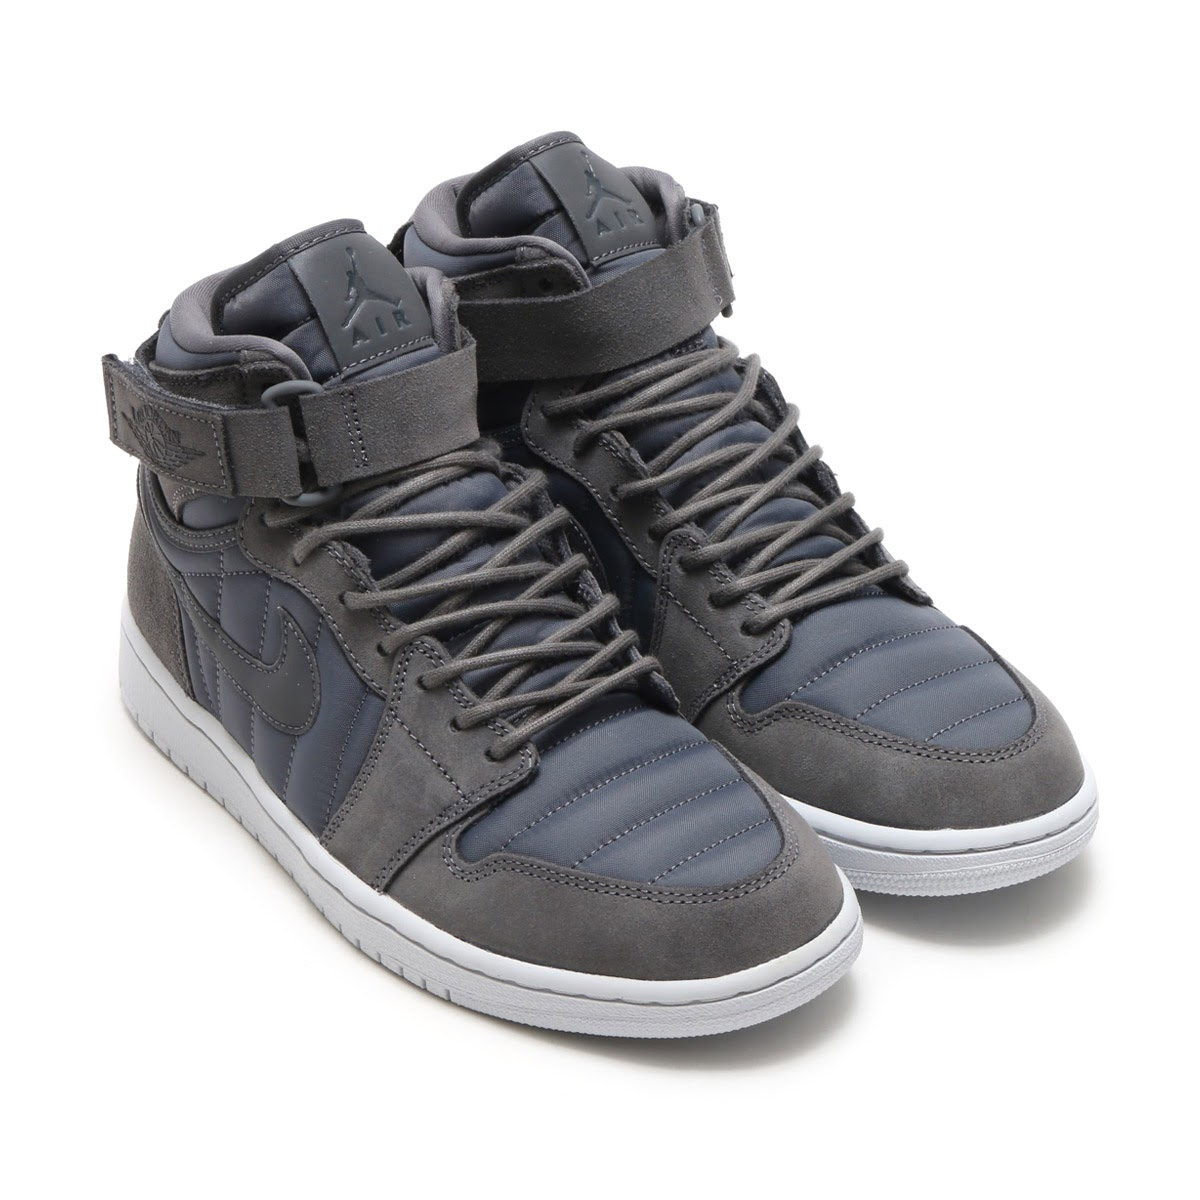 NIKE AIR JORDAN 1 HIGH STRAP(ナイキ エア ジョーダン 1 ハイ ストラップ)(DARK GREY/DARK GREY-PURE PLATINUM)17HO-S